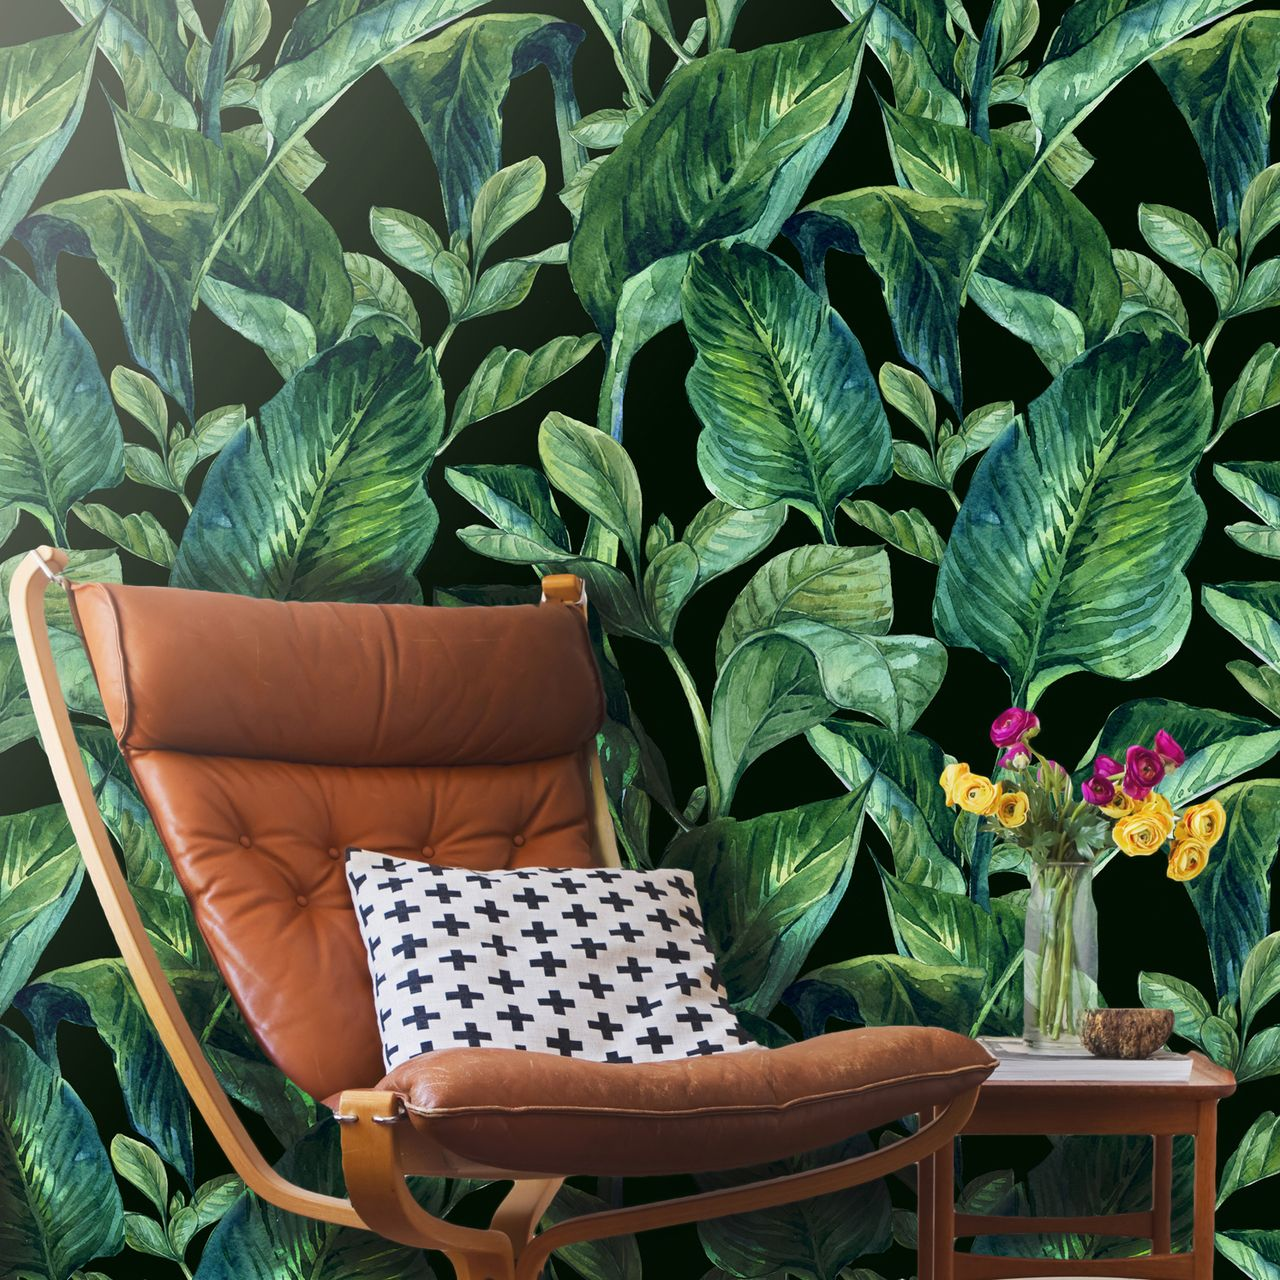 large murals style removable wallpapers can transform your walls large murals style removable wallpapers can transform your walls self adhesive temporary removable wallpaper